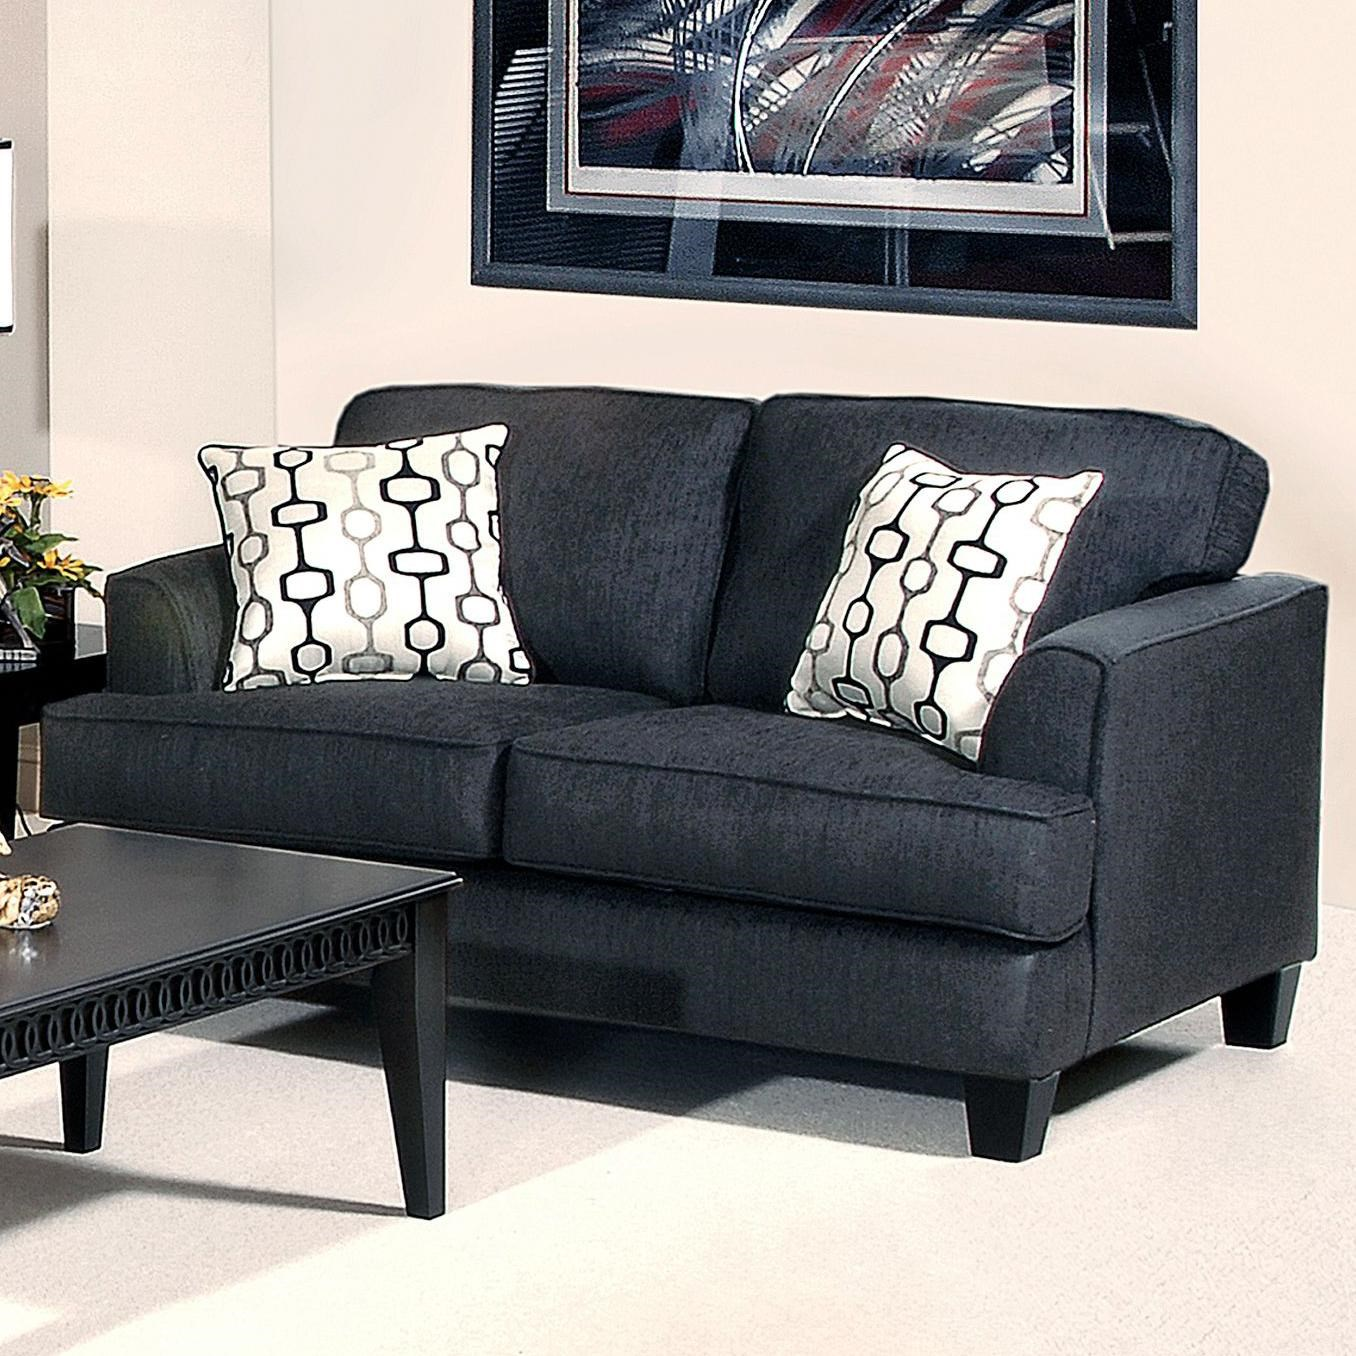 Serta sofa serta sofa with serta sofa interesting serta for Affordable furniture upholstery